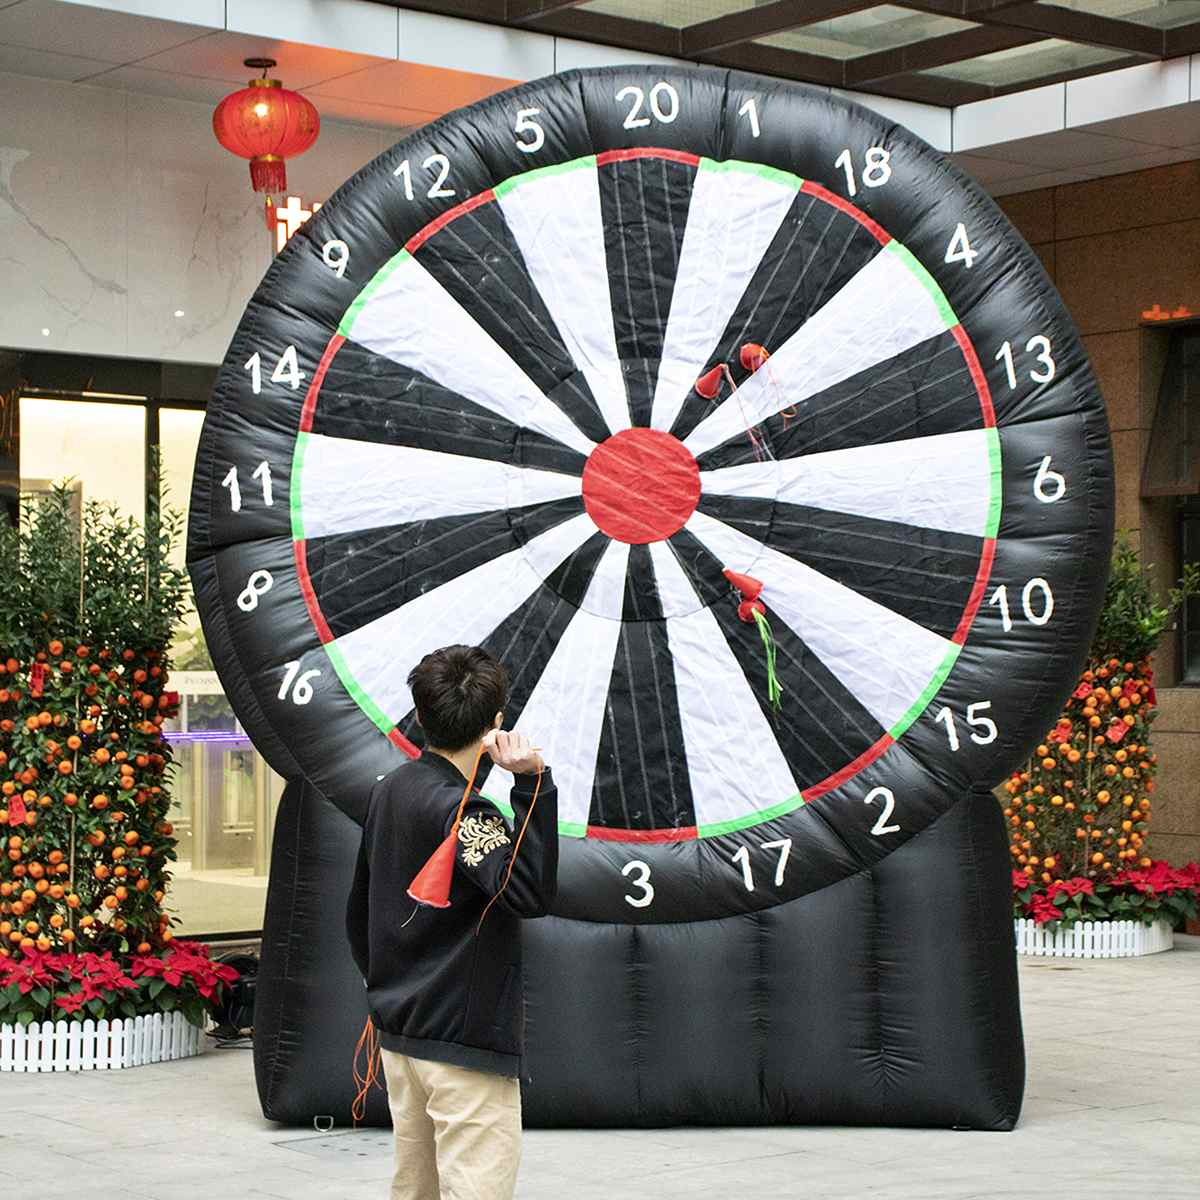 4 Meter Giant Inflatable Dart Board With Air Blower 220V Outdoor Durable Game Oxford Fabric Throwing Sport Games Inflatable Toys